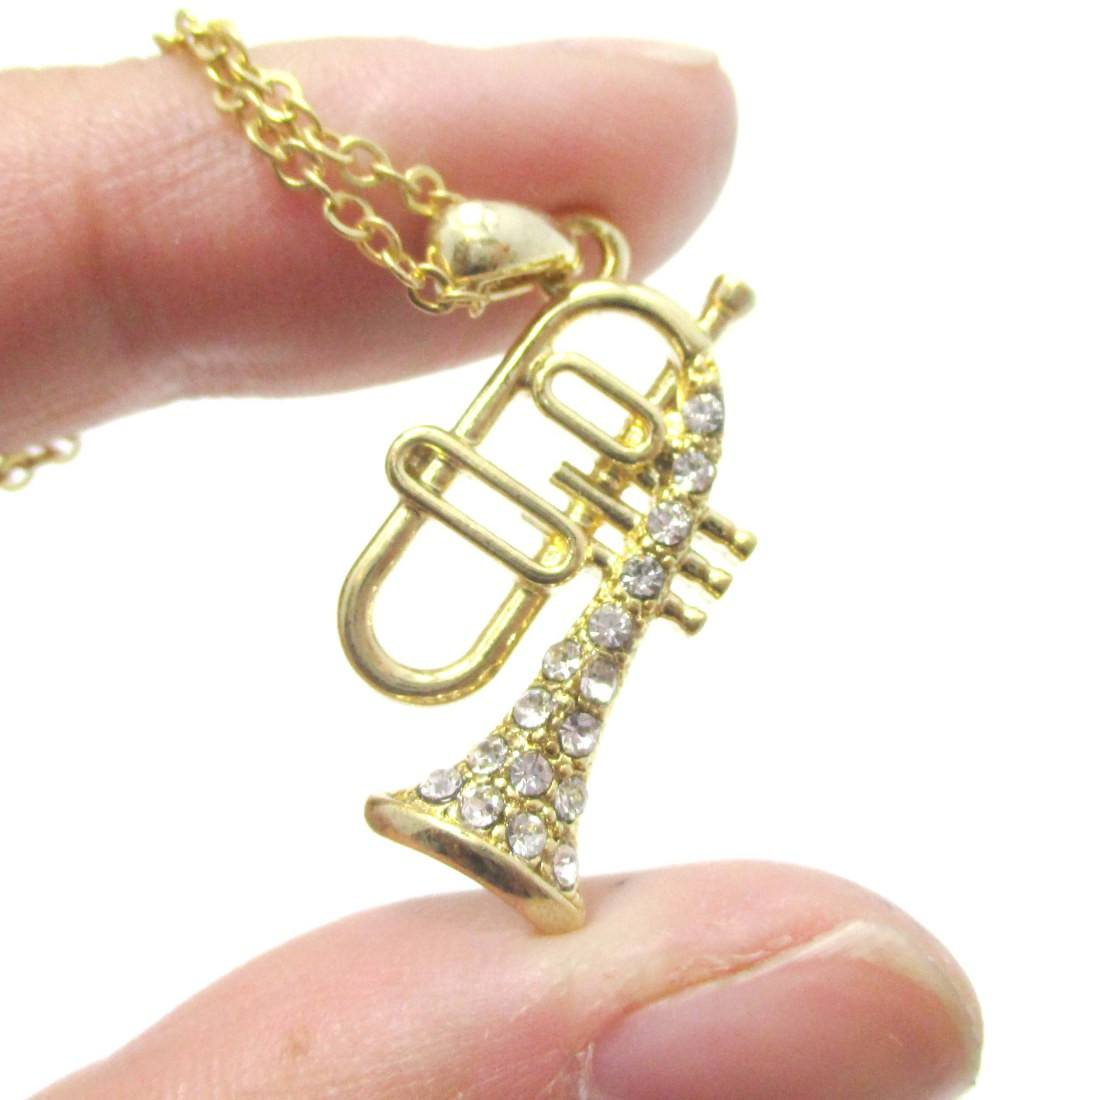 Trumpet Shaped Rhinestone Pendant Necklace in Gold